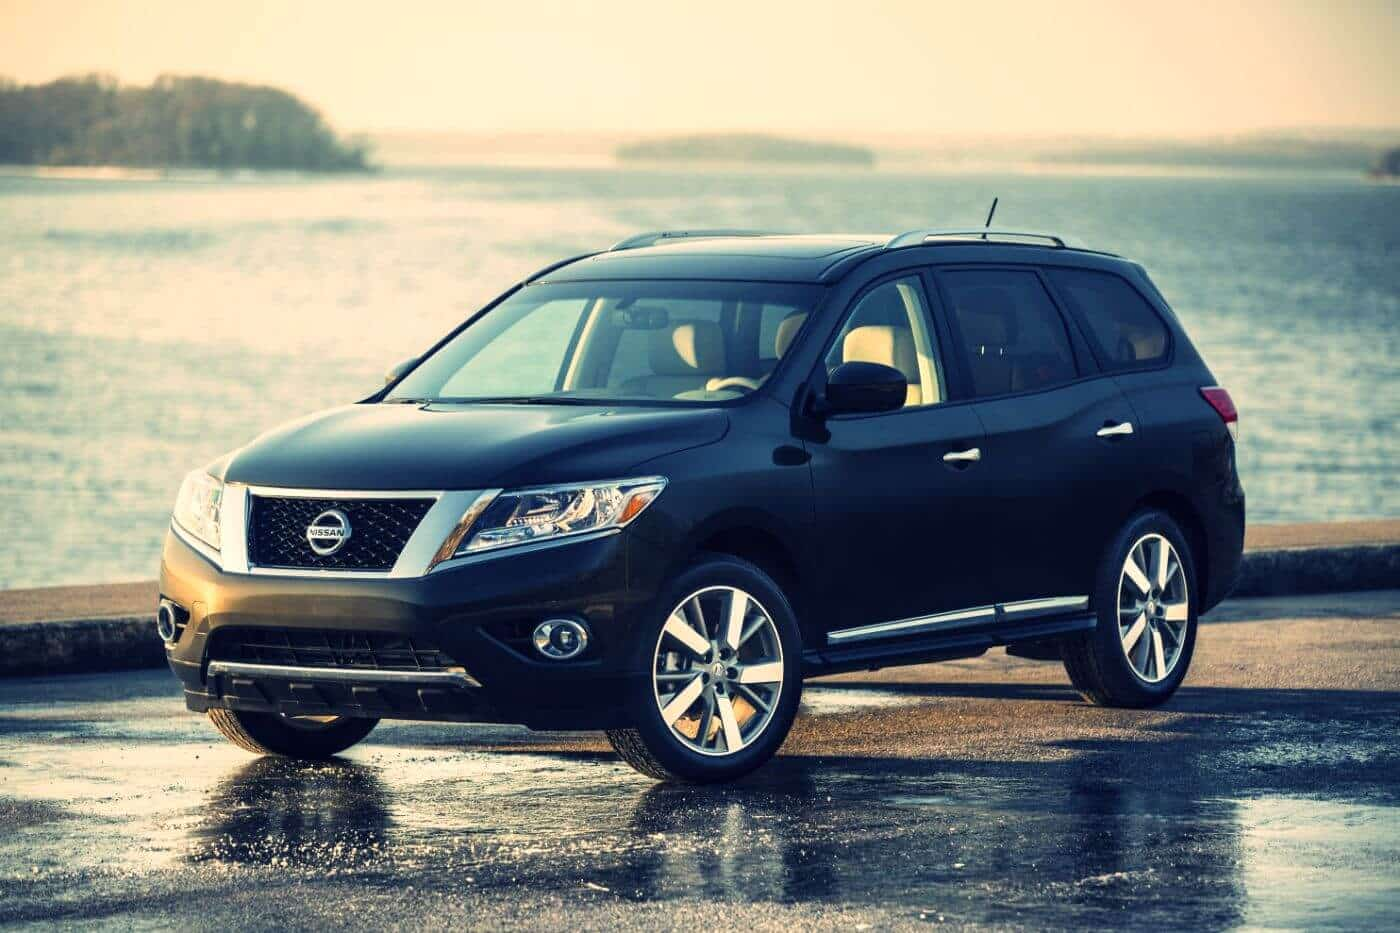 2019 Nissan Pathfinder Reviews Price Amp Release Date